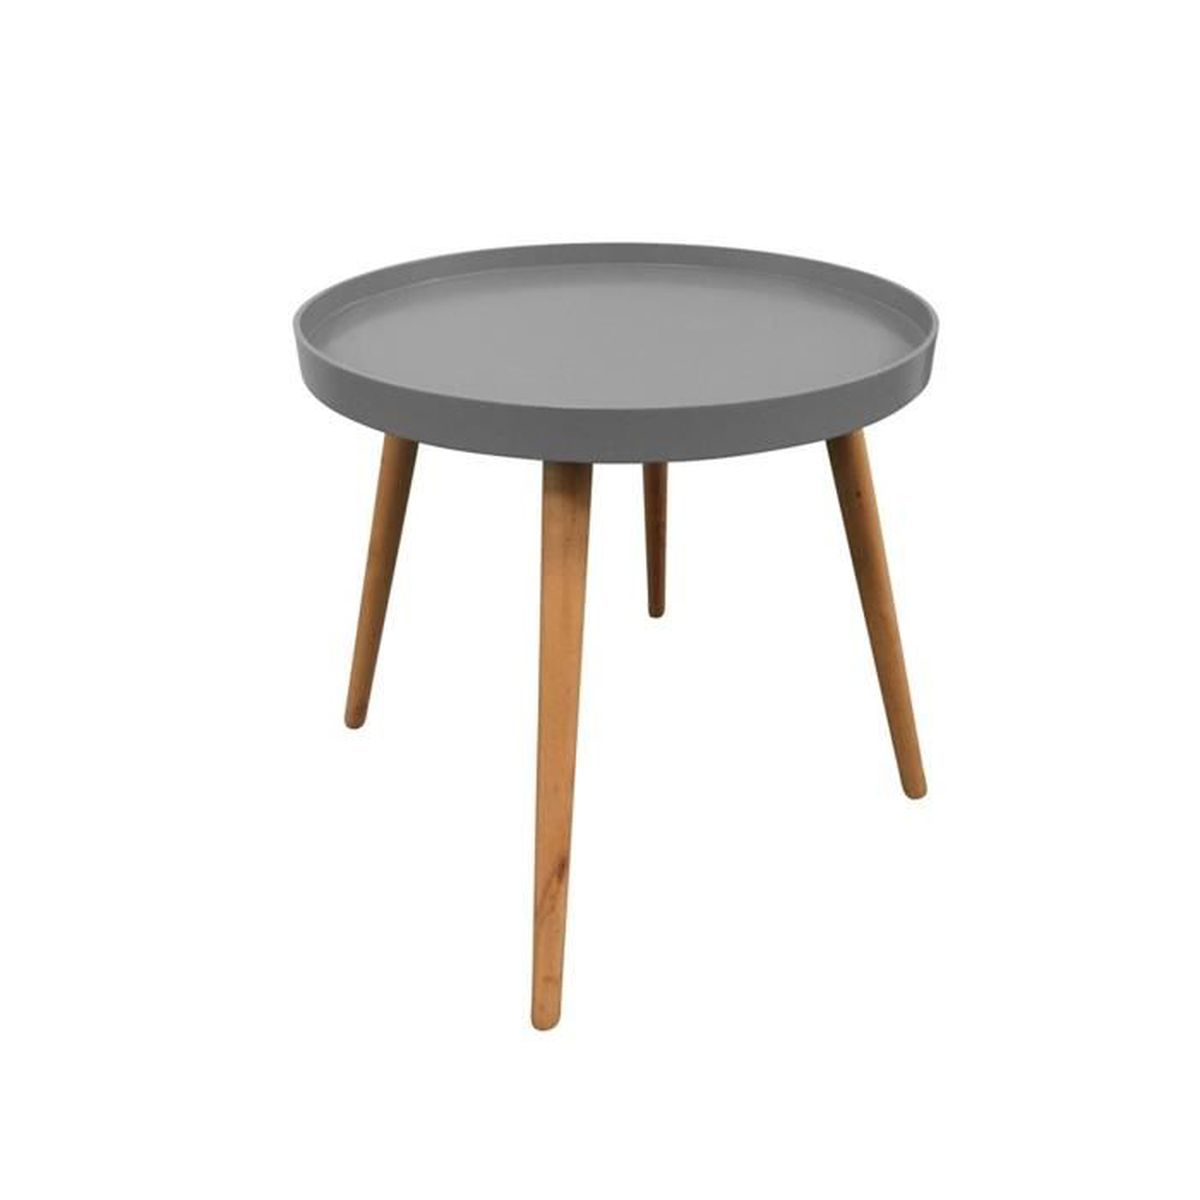 Table Plateau Ronde Grise Achat Vente Table D Appoint Table